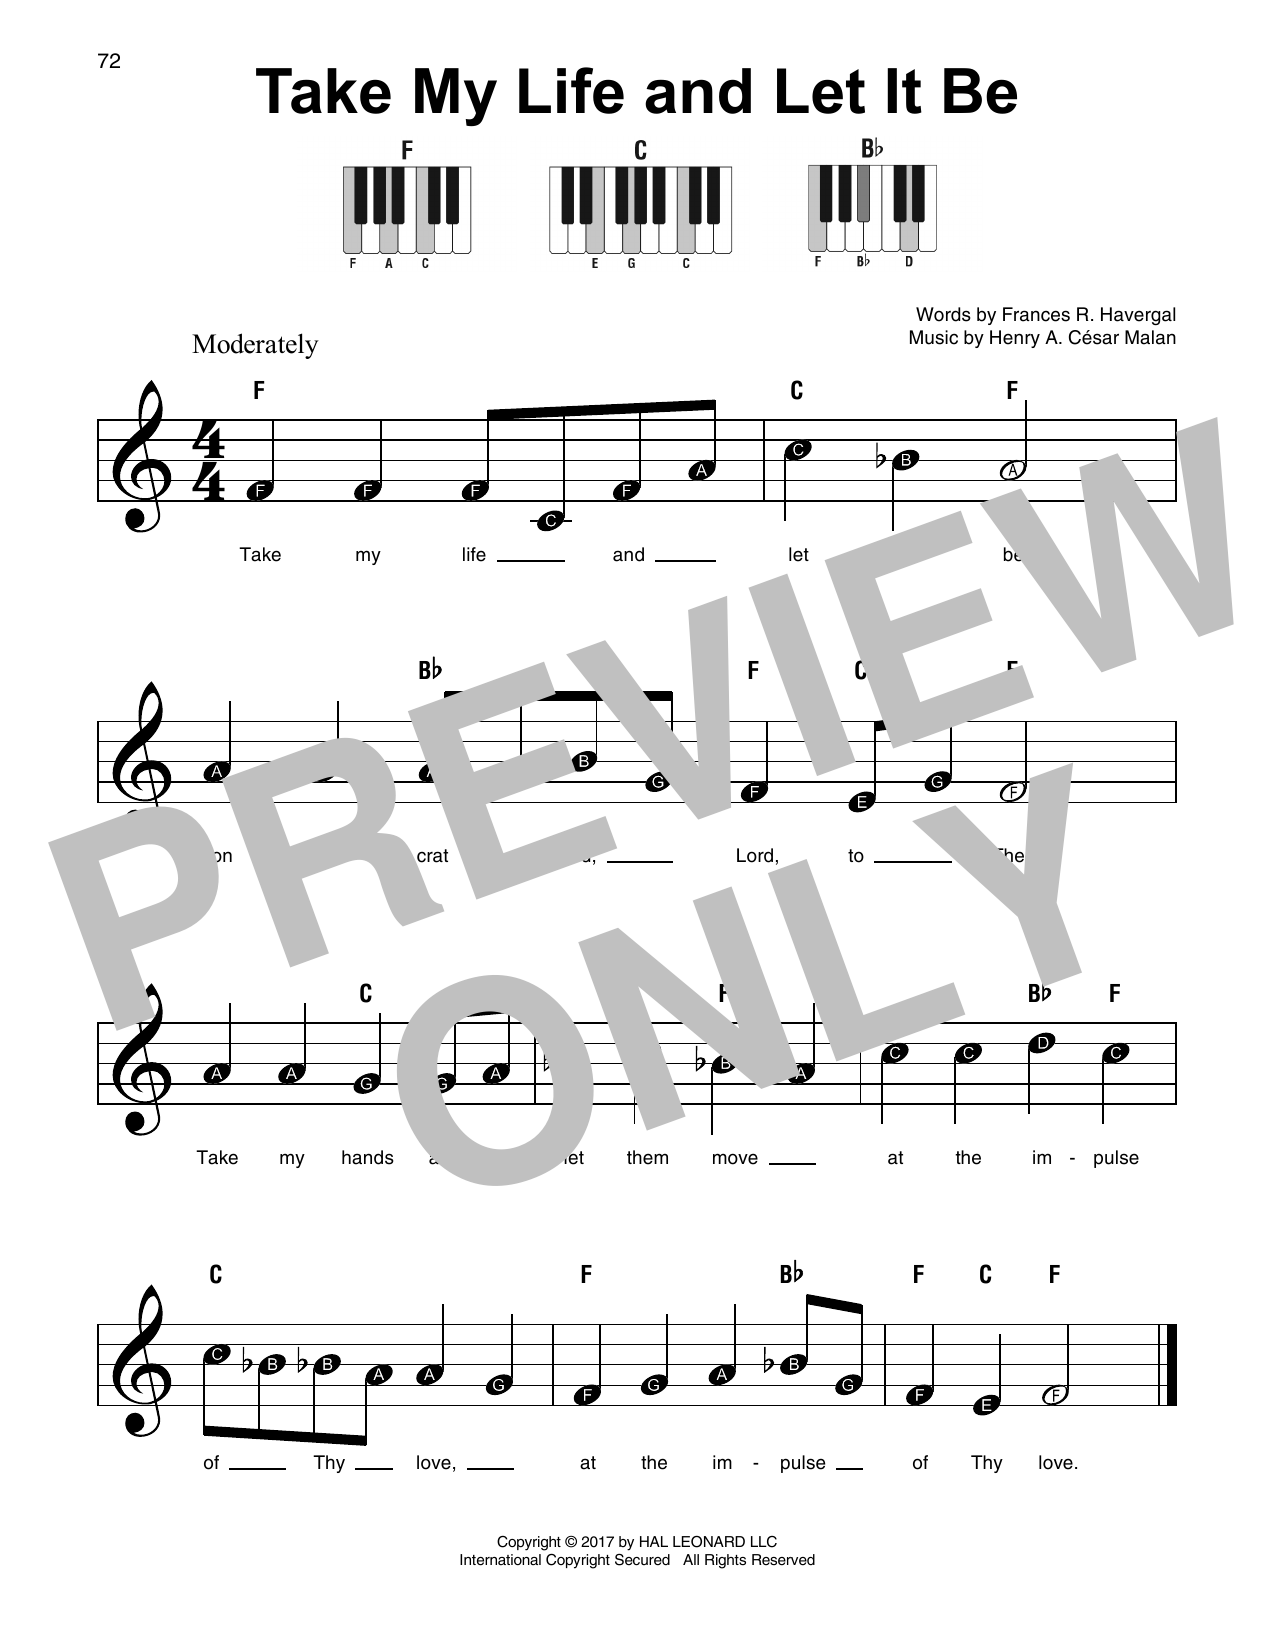 Take My Life And Let It Be piano sheet music by Henry A  Cesar Malan -  Super Easy Piano